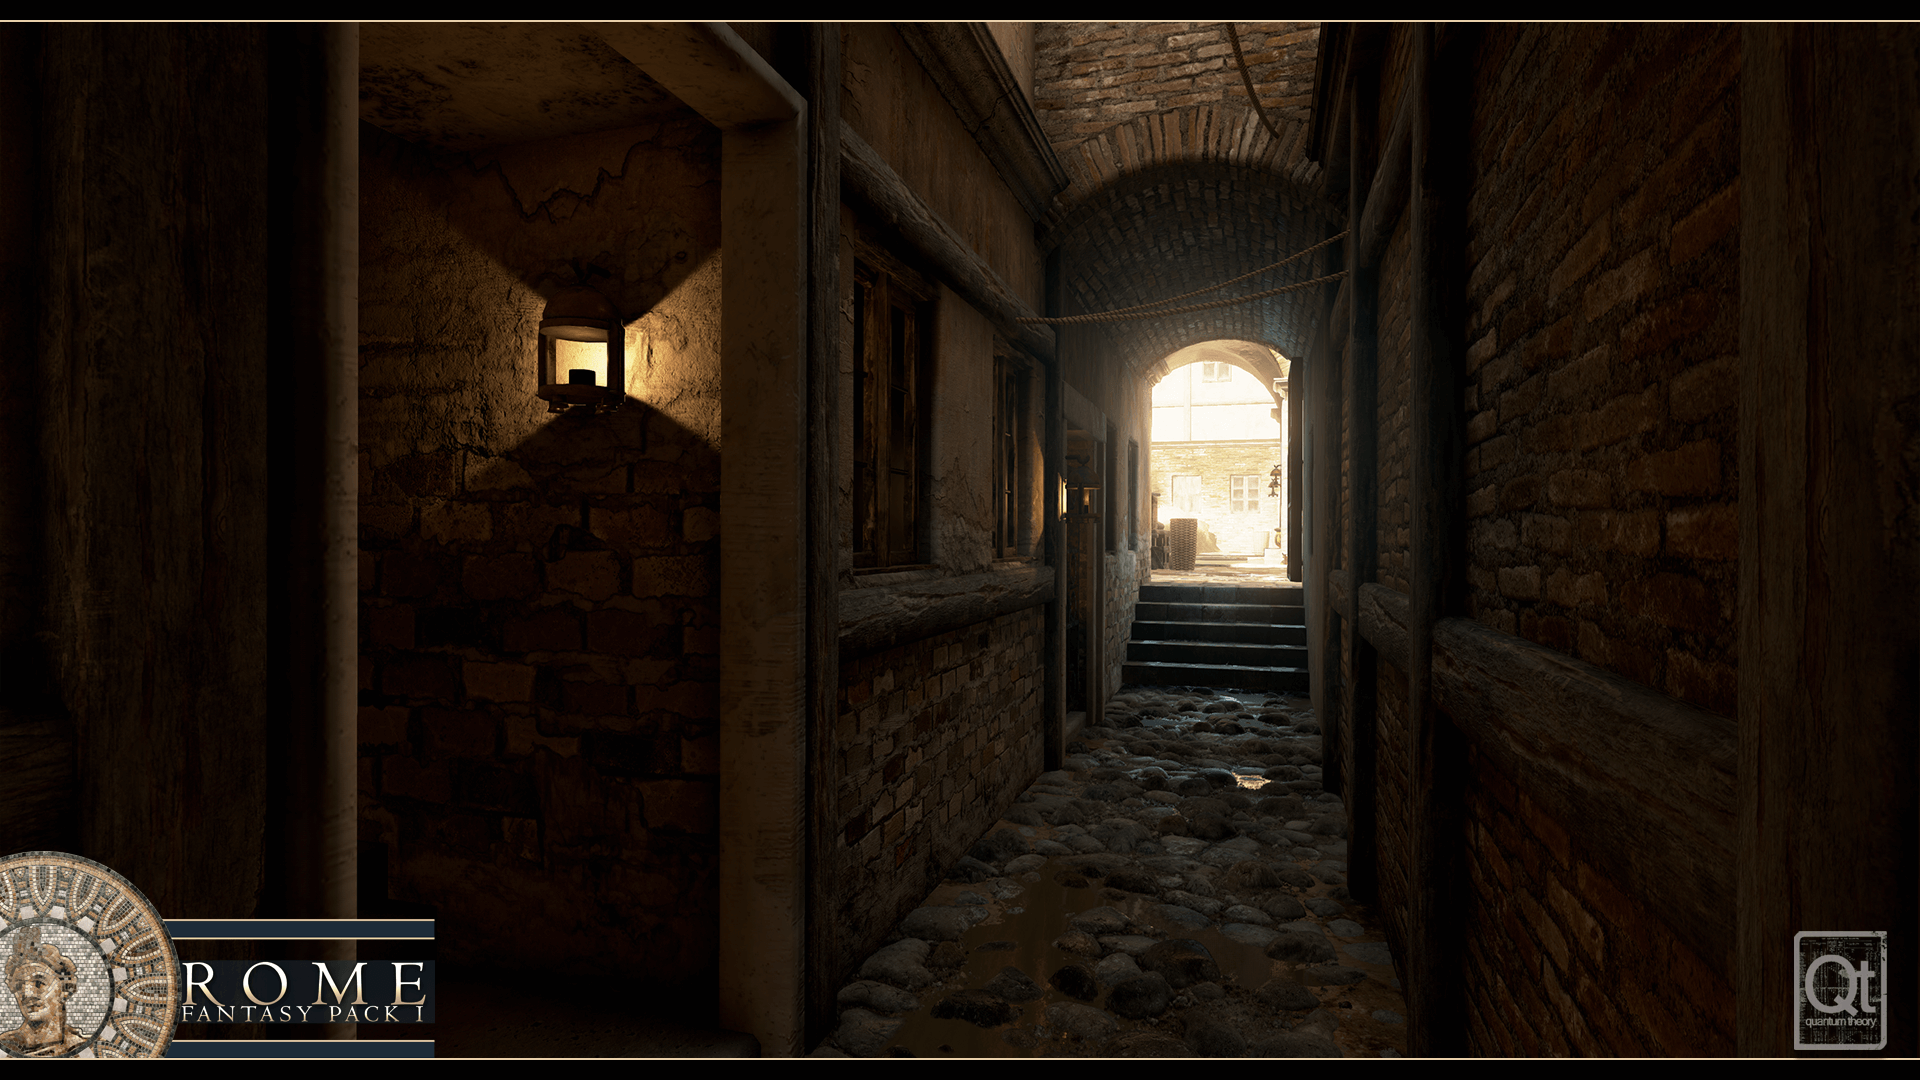 Rome Fantasy Pack I by Quantum Theory in Environments - UE4